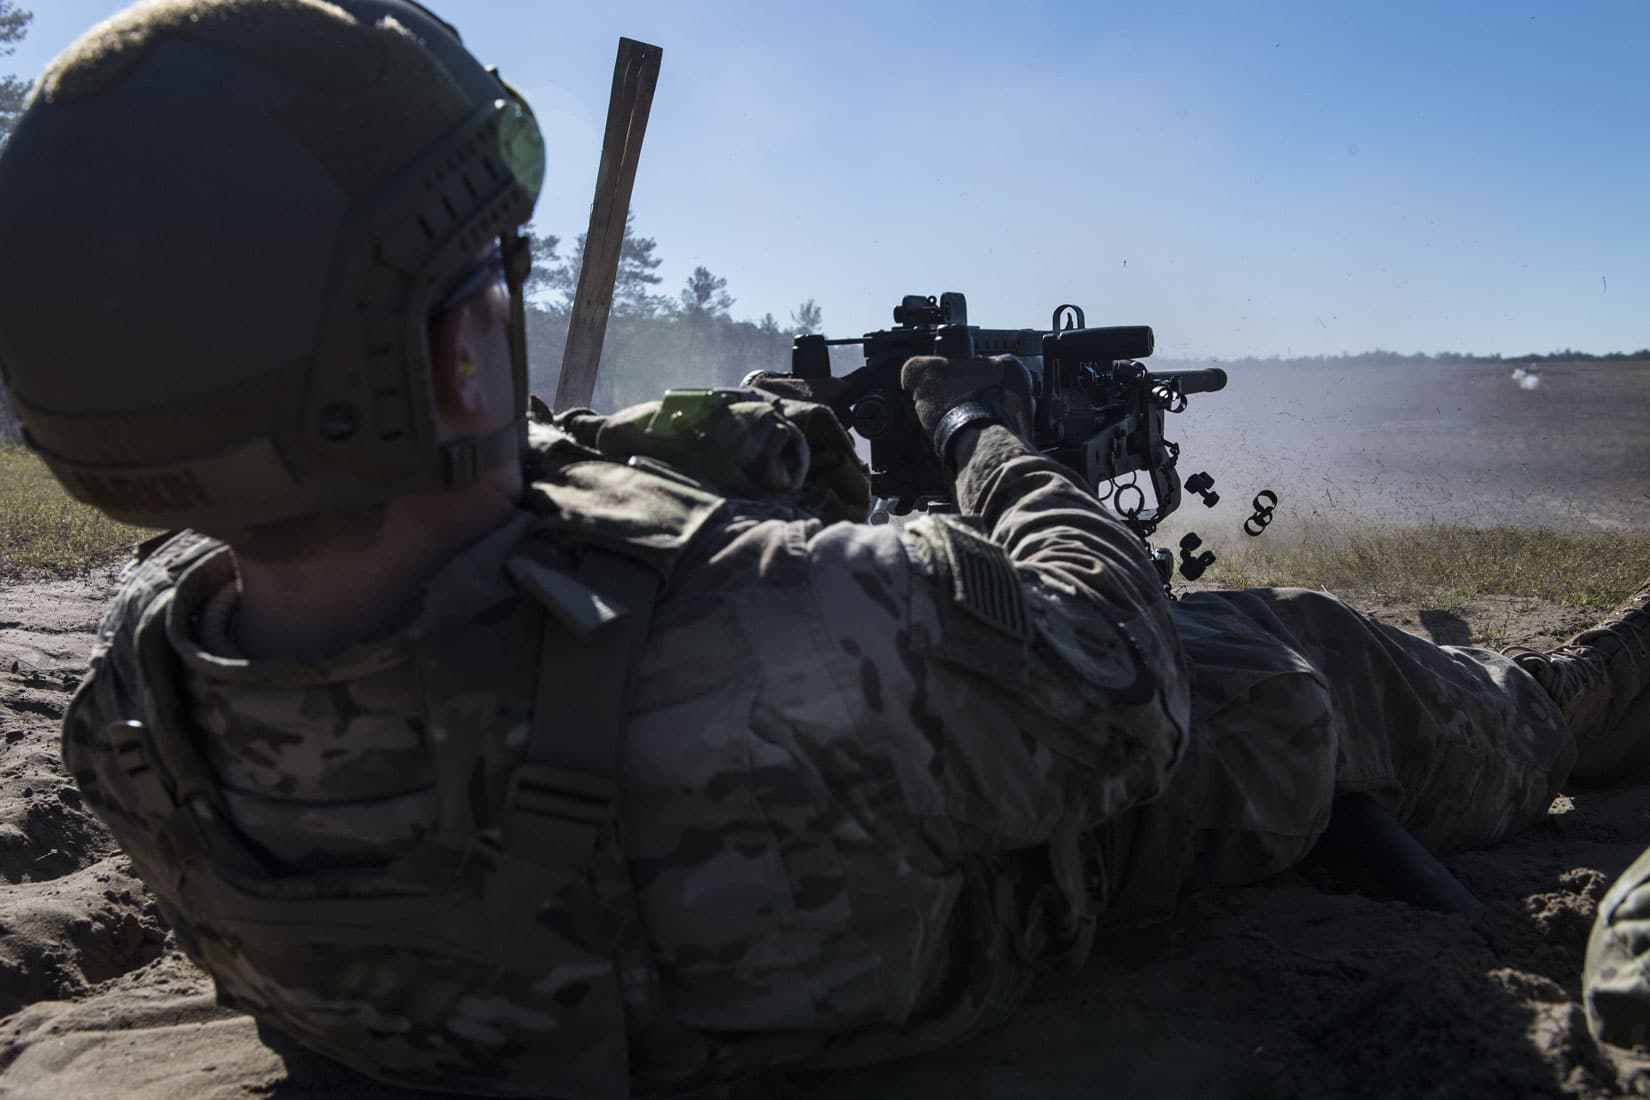 Staff Sgt. Richard Murkin, 823d Base Defense Squadron fireteam member, fires a .50 Caliber M2 machine gun, during a heavy weapons qualification at Camp Blanding Joint Training Center, Florida.